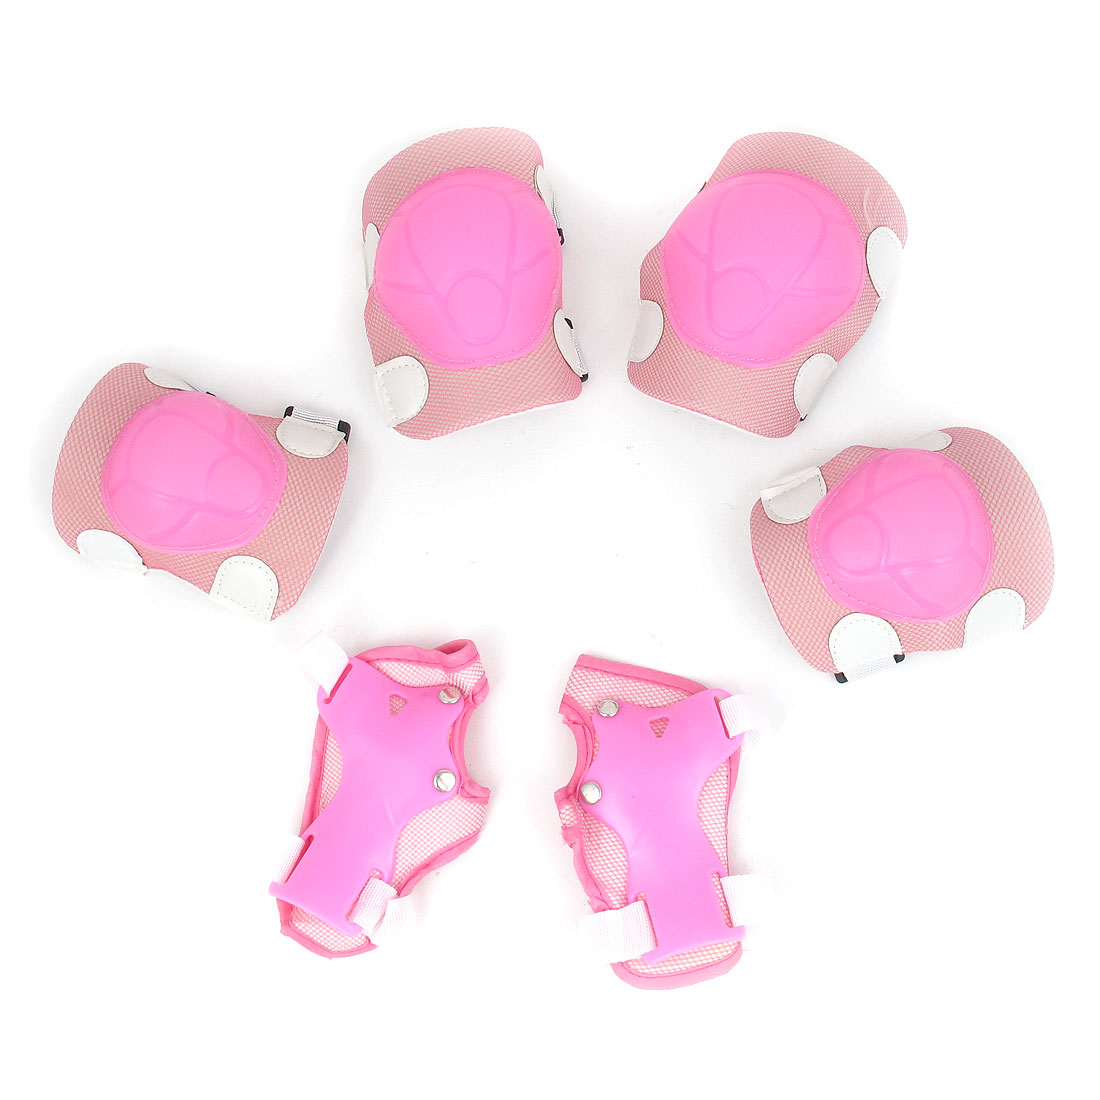 Outdoor Sports Skiing Skating Palm Elbow Knee Support Guard Protective Pad Set Pink 6 in 1